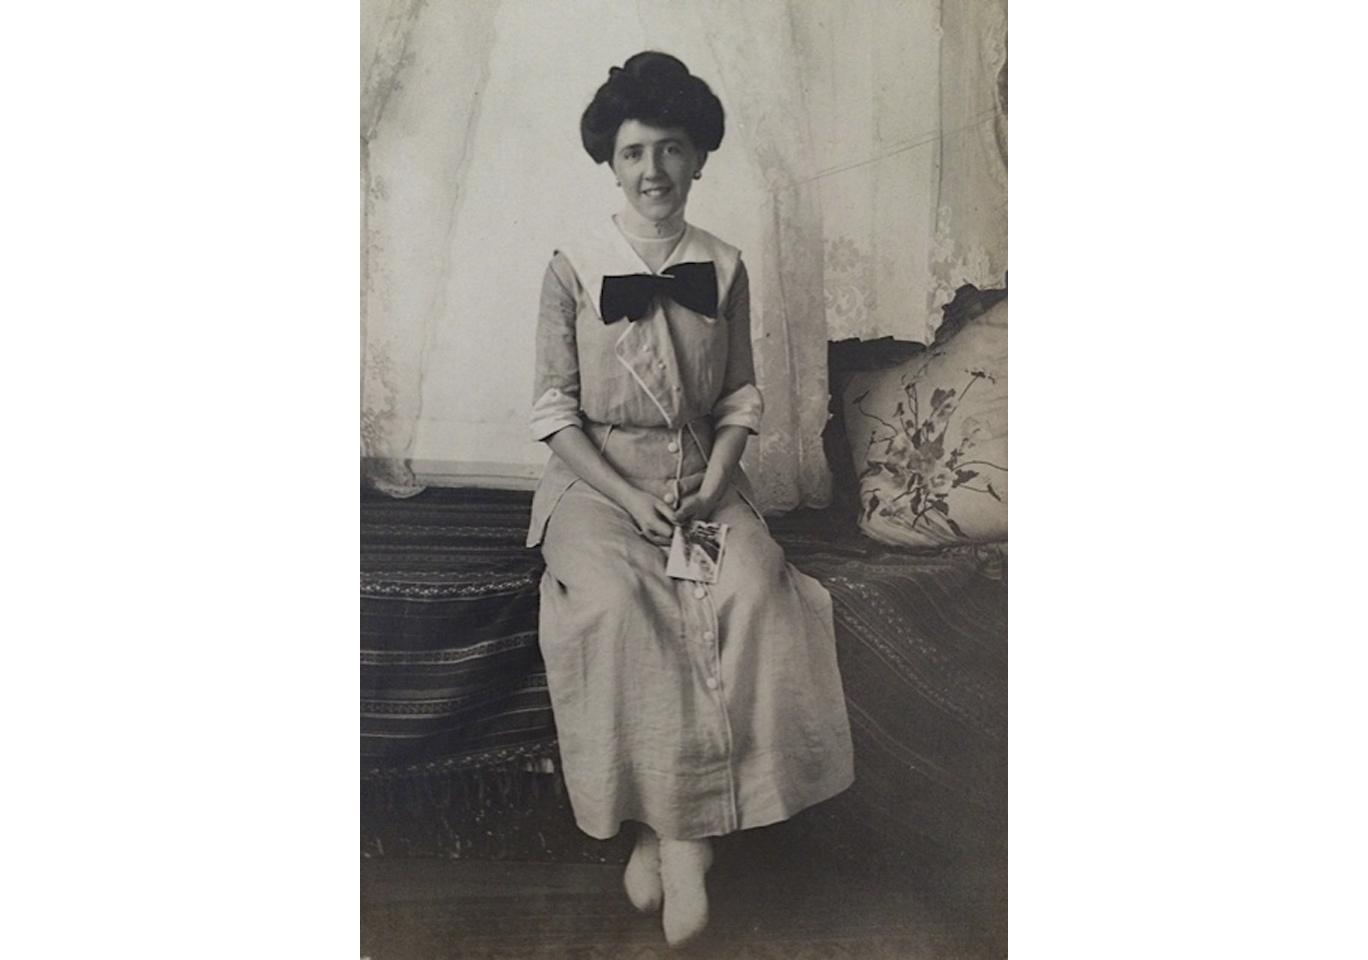 Julia as a young woman, circa 1916.